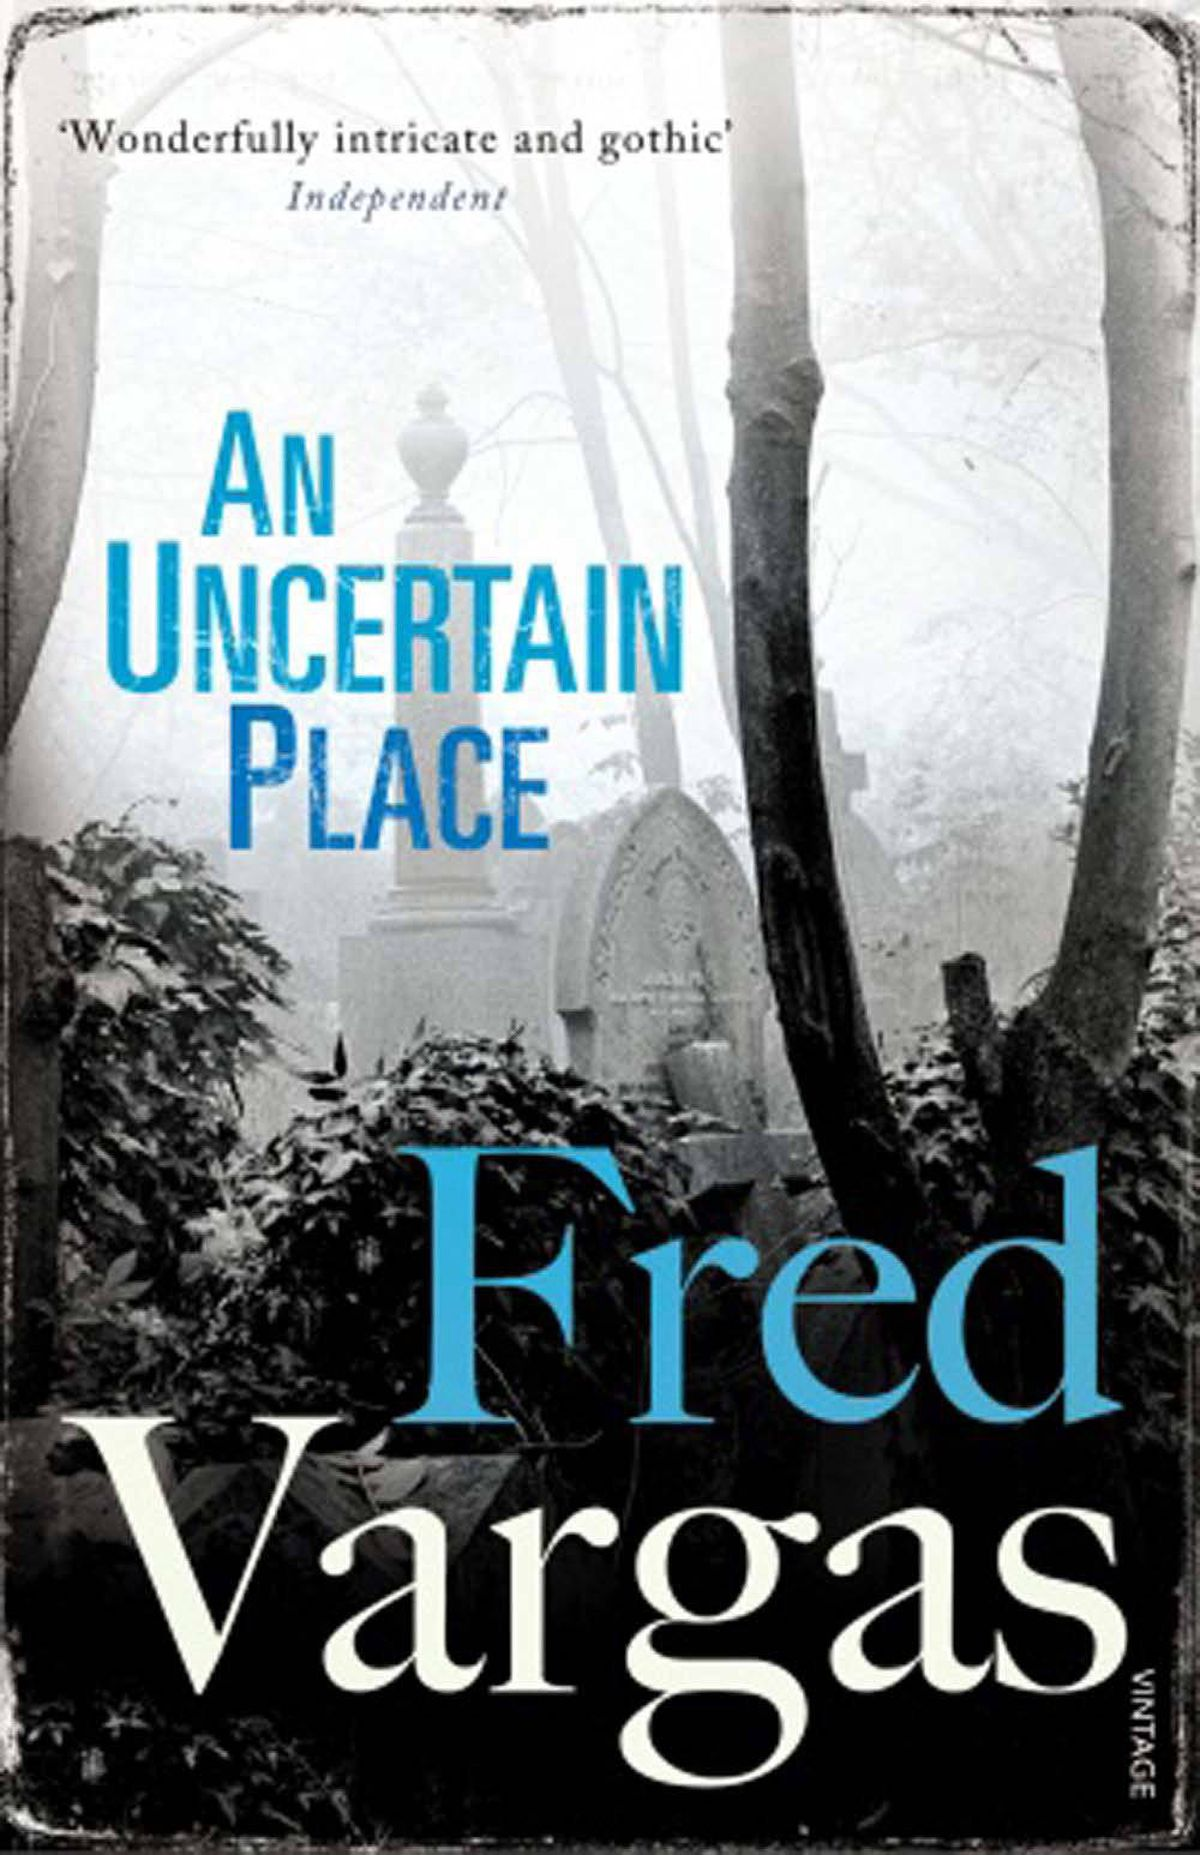 AN UNCERTAIN PLACE By Fred Vargas, Vintage Commissaire Adamsberg goes to London and back in this brilliantly constructed mystery. The best Vargas.